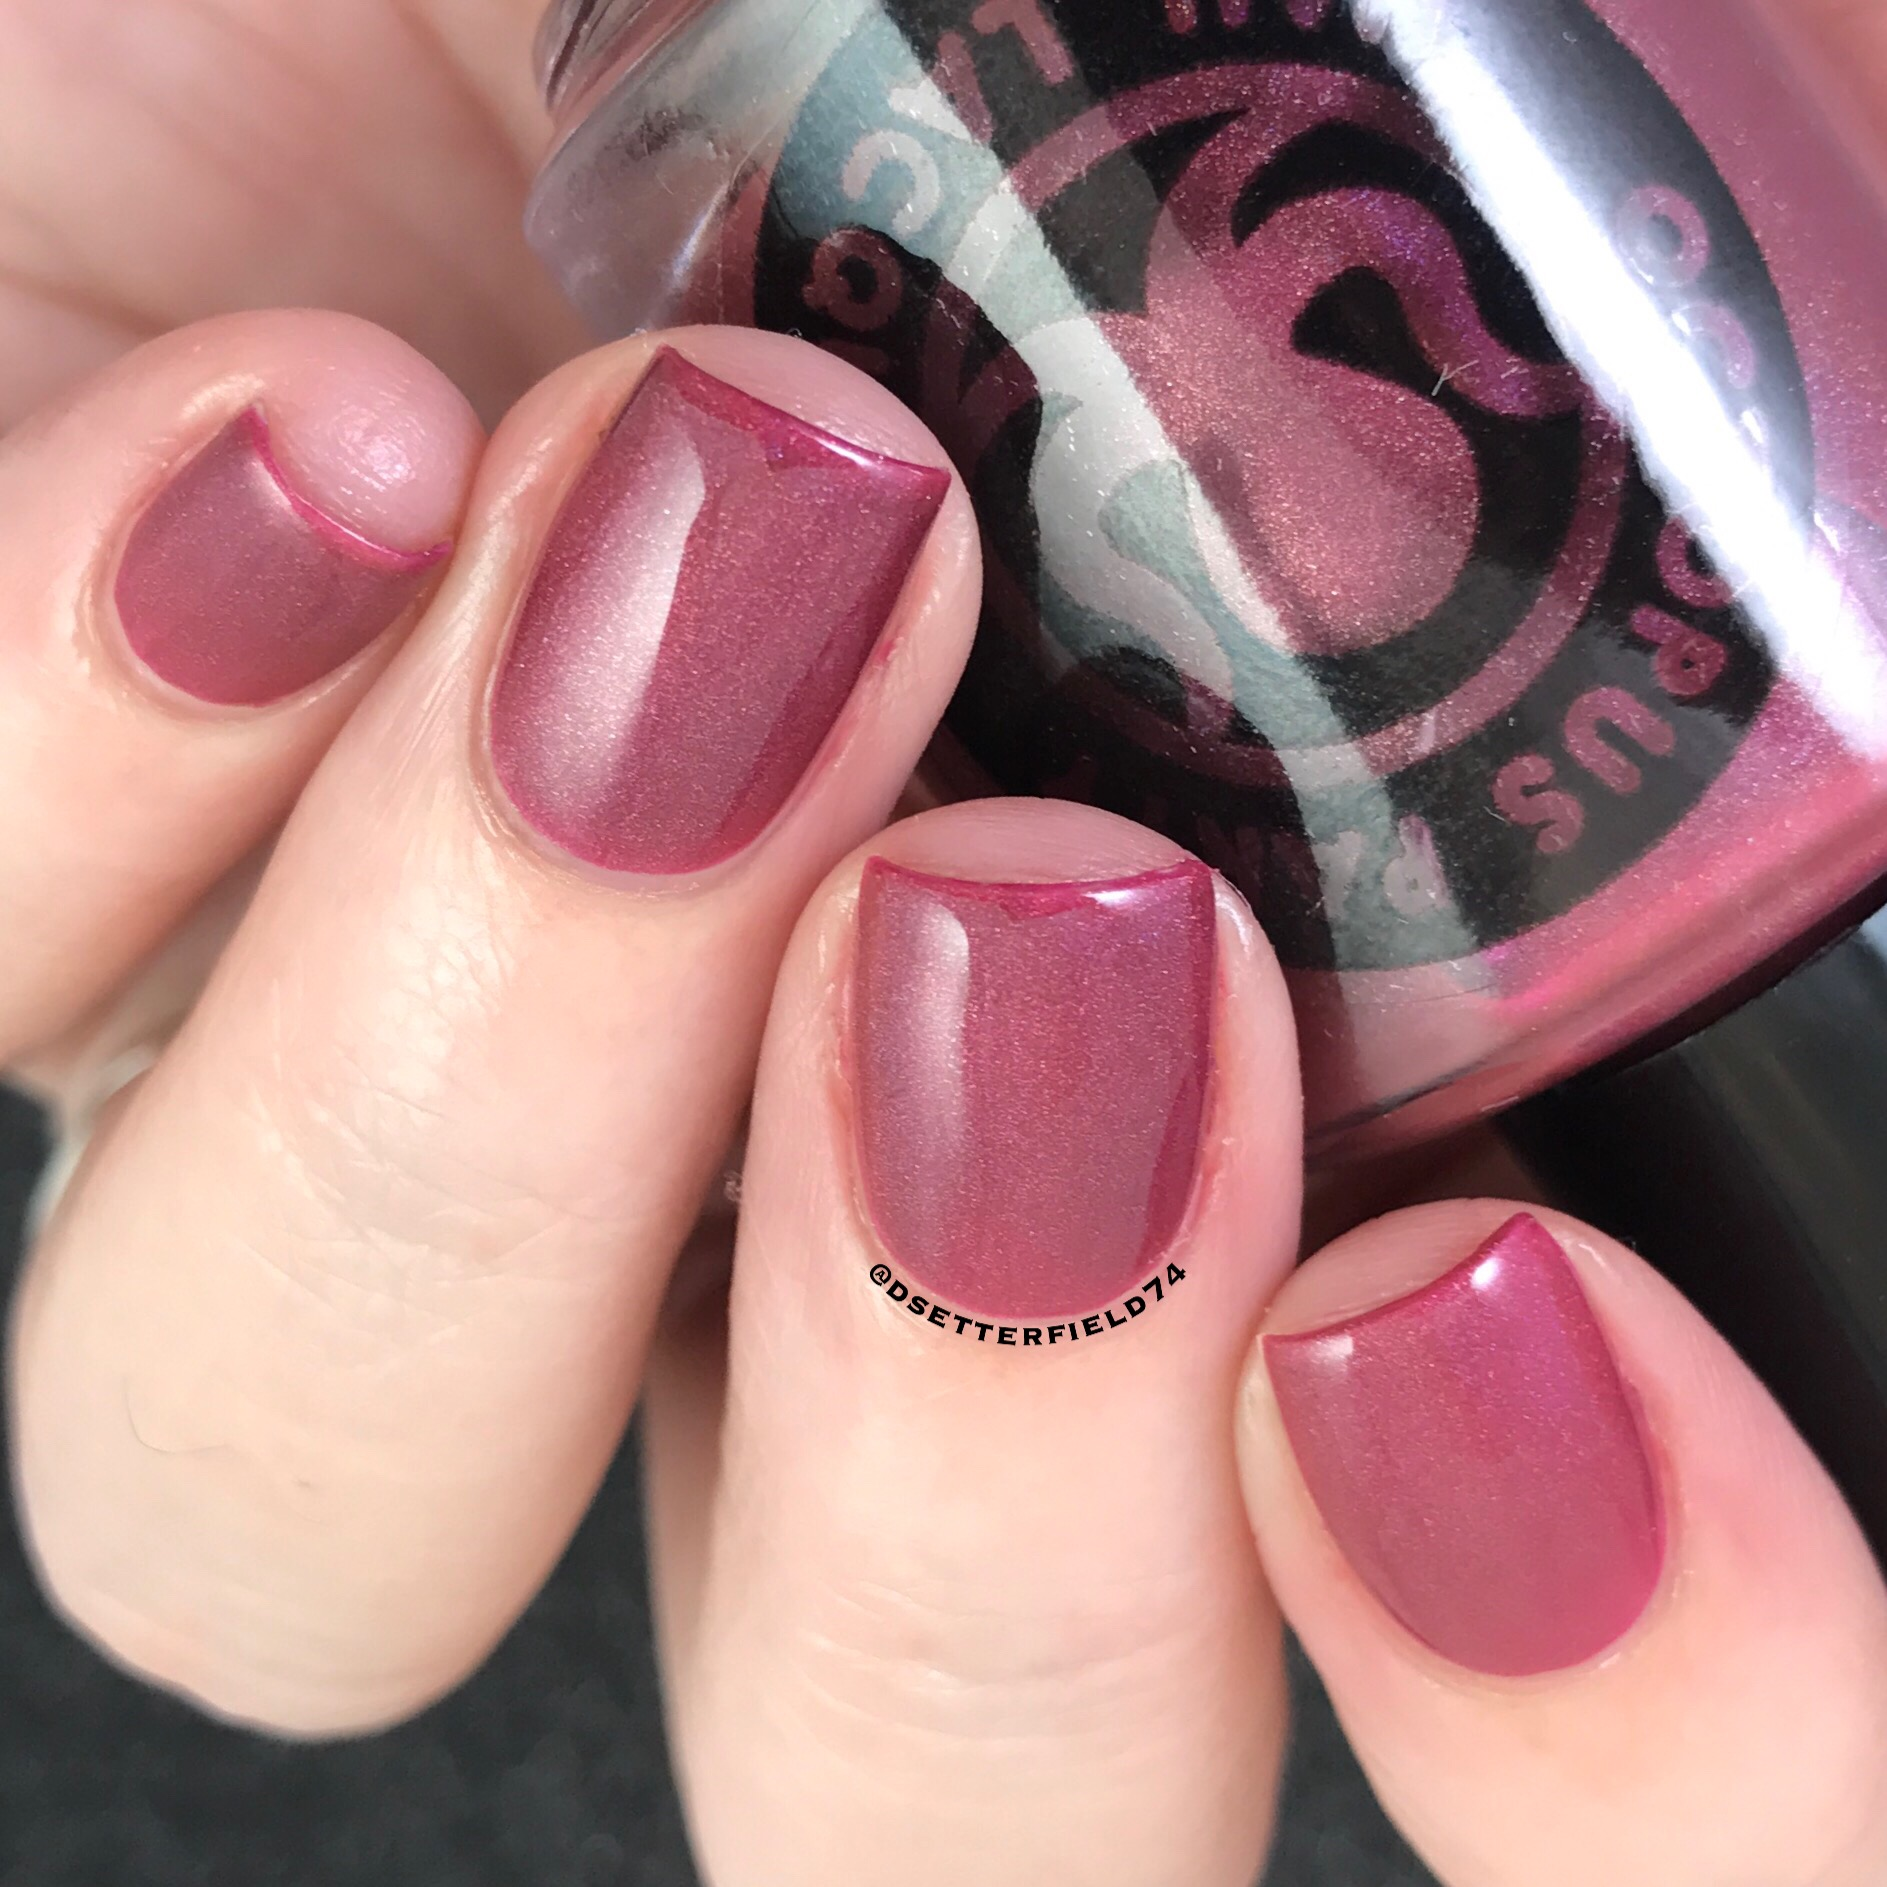 Octopus Party Nail Lacquer: Winter Collection and Holiday Duo ...